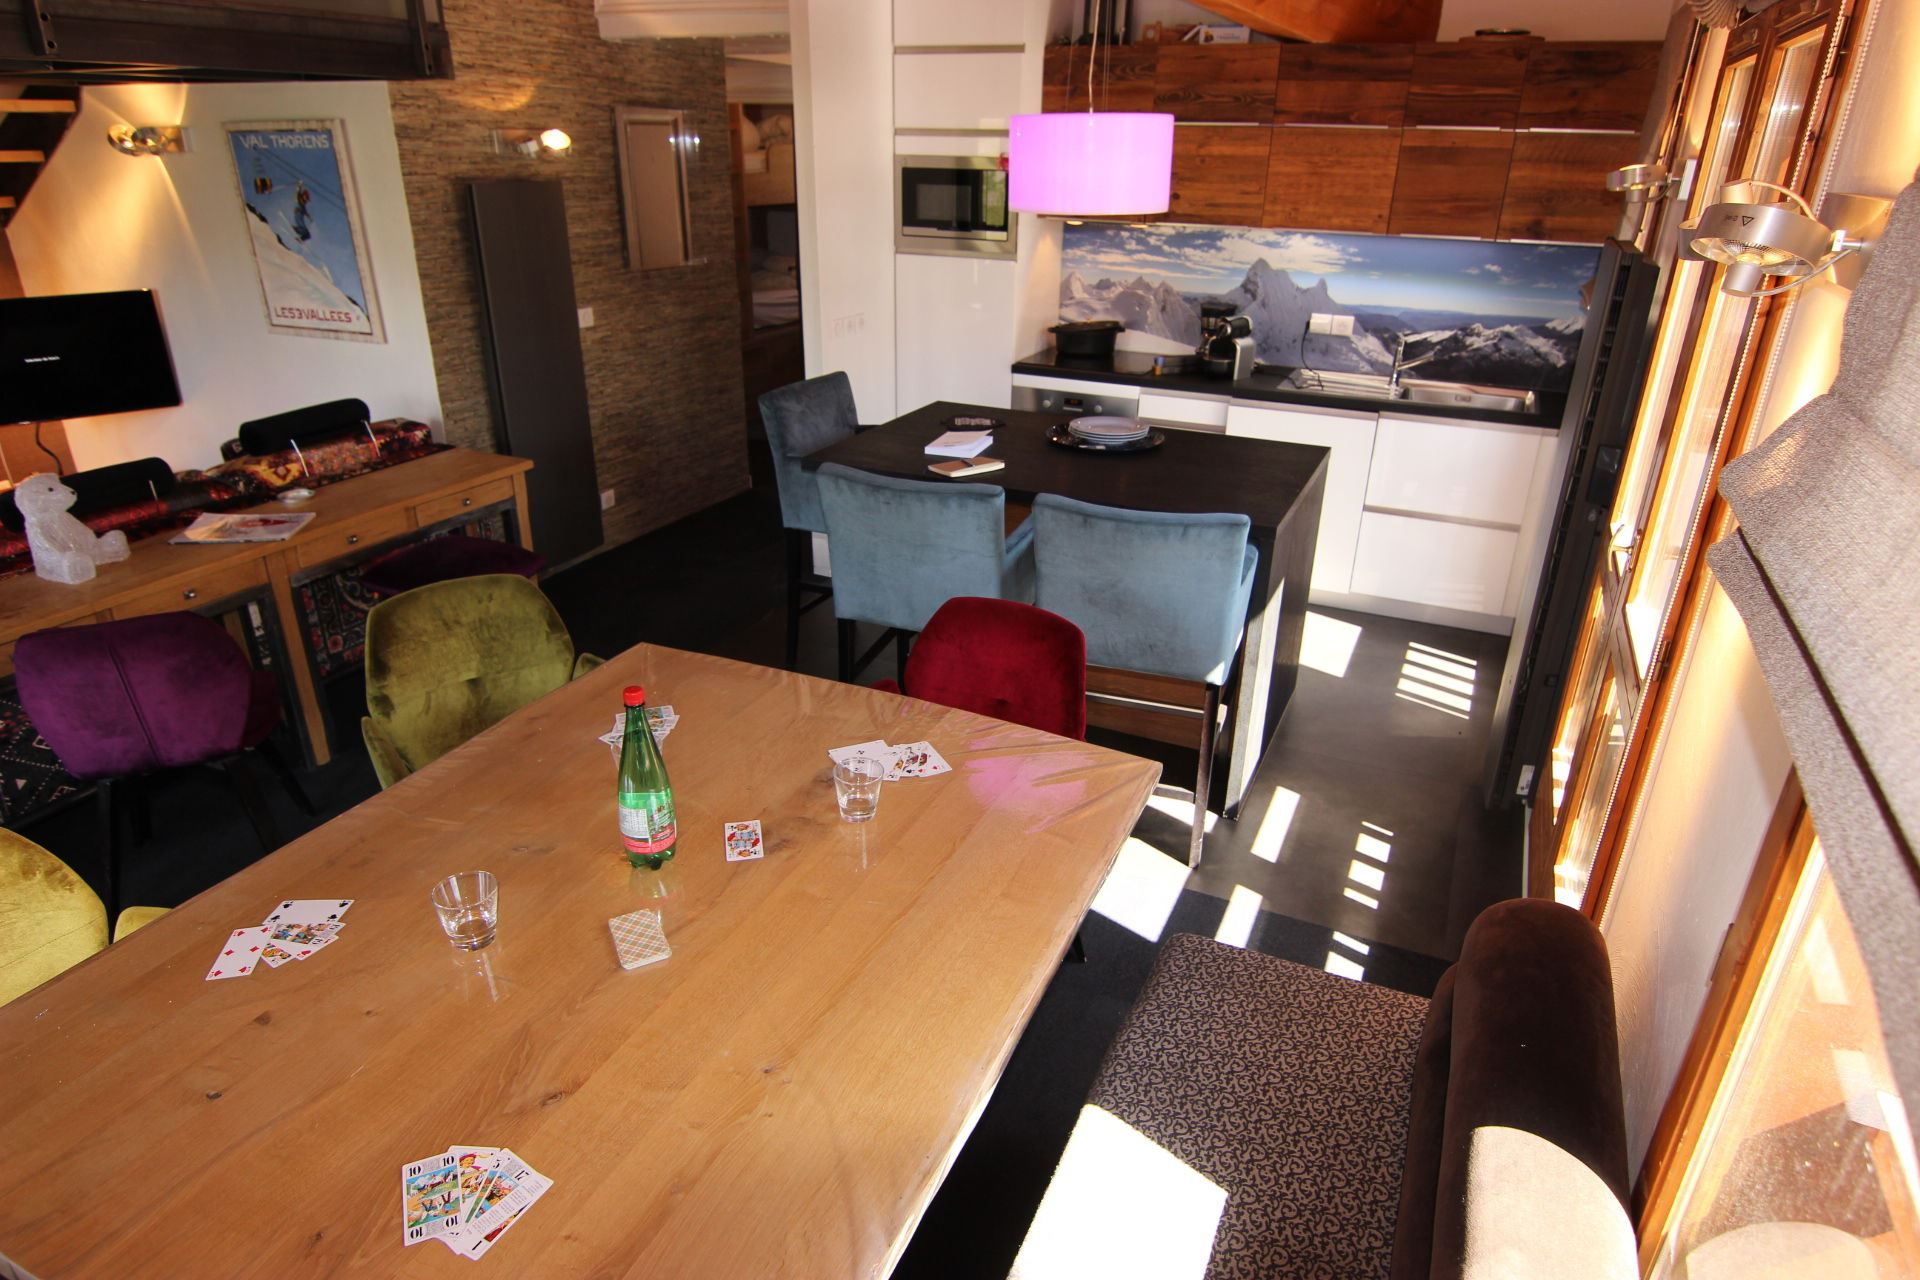 CHALET EMERAUDE 5 / APARTMENT 4 ROOMS MEZZANINE 8 PERSONS - 3 GOLD SNOWFLAKES - VTI